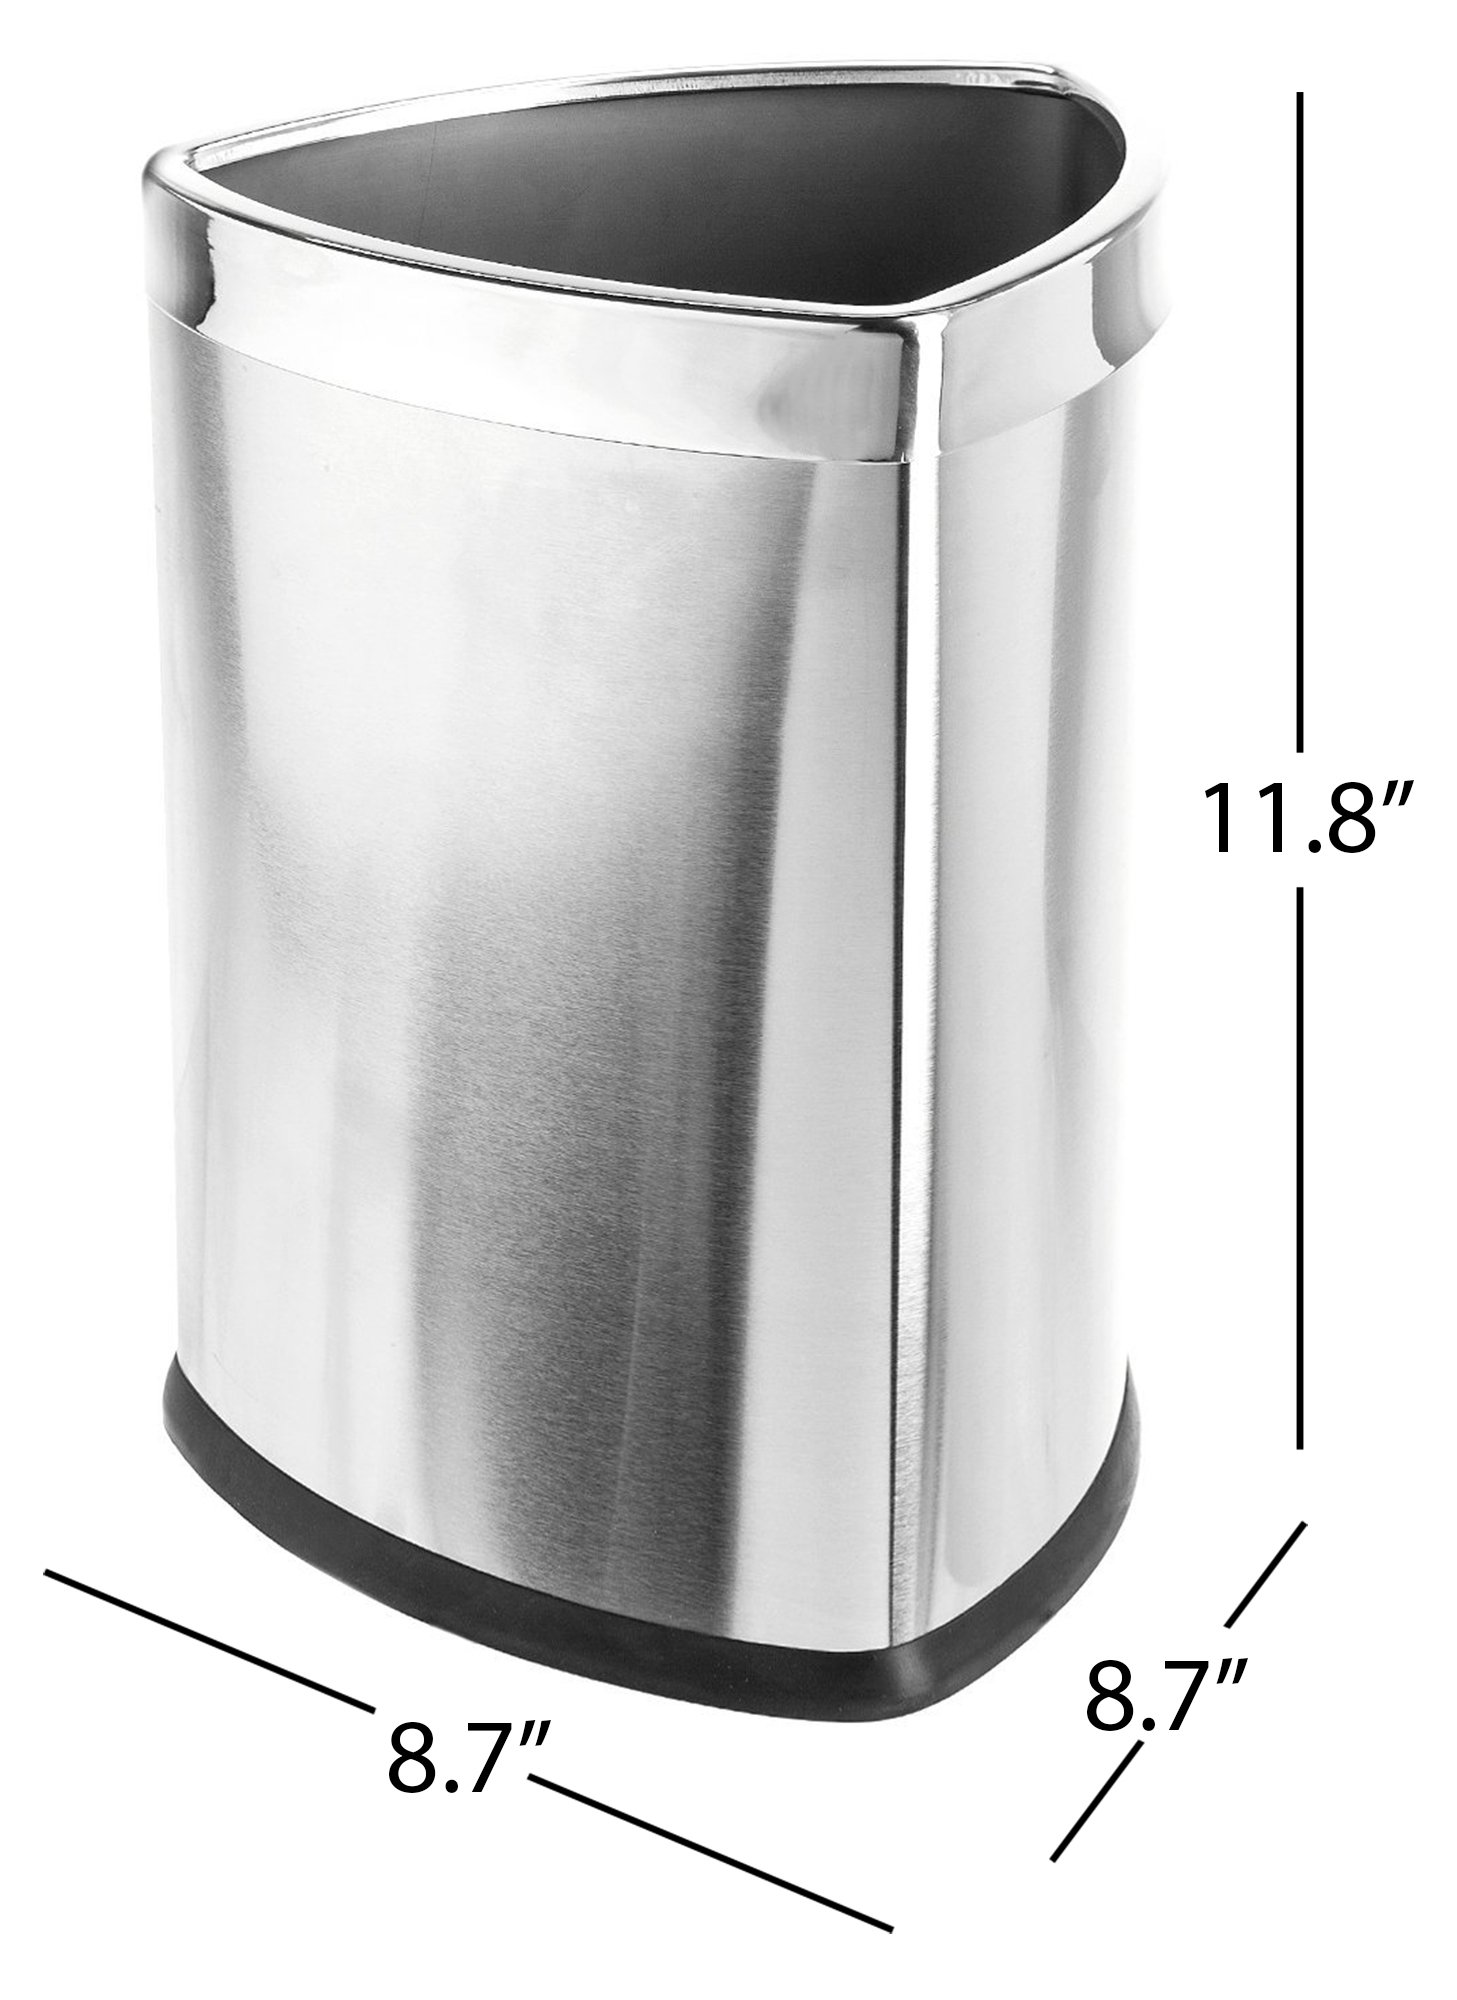 Bennett Magnificent Designed ''Triangle Shape'' Wastebasket, Small Office Open Top Stainless Steel Trash Can,